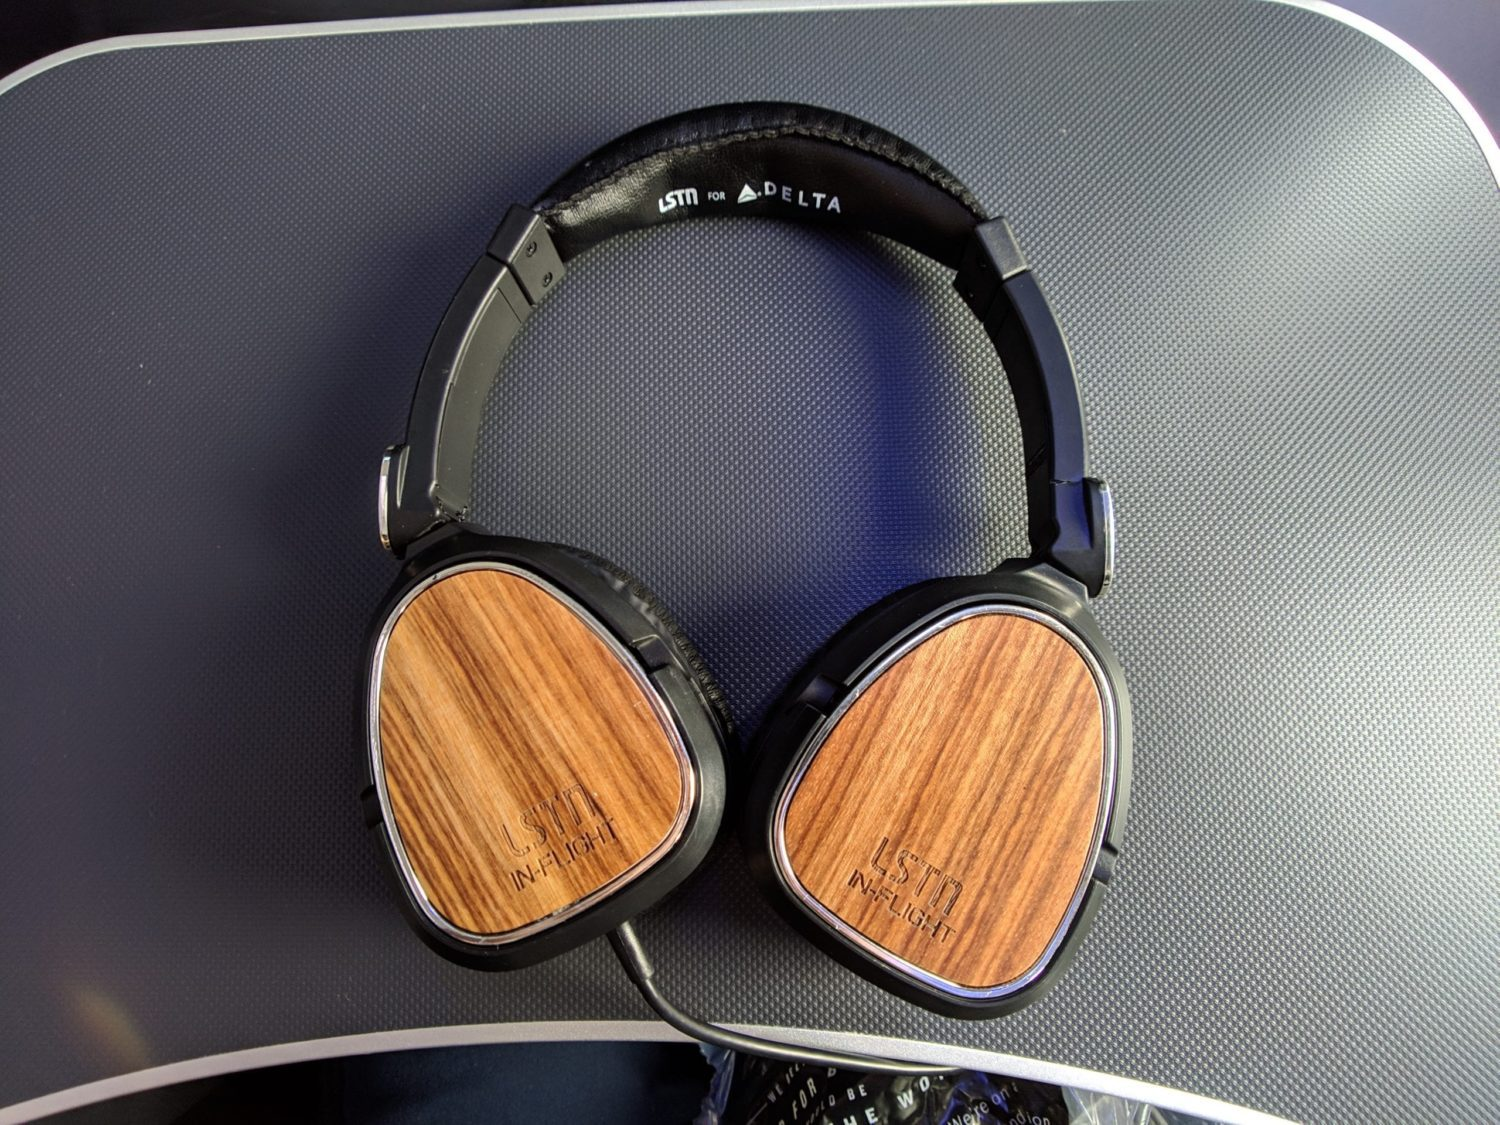 Delta One Suites headphones